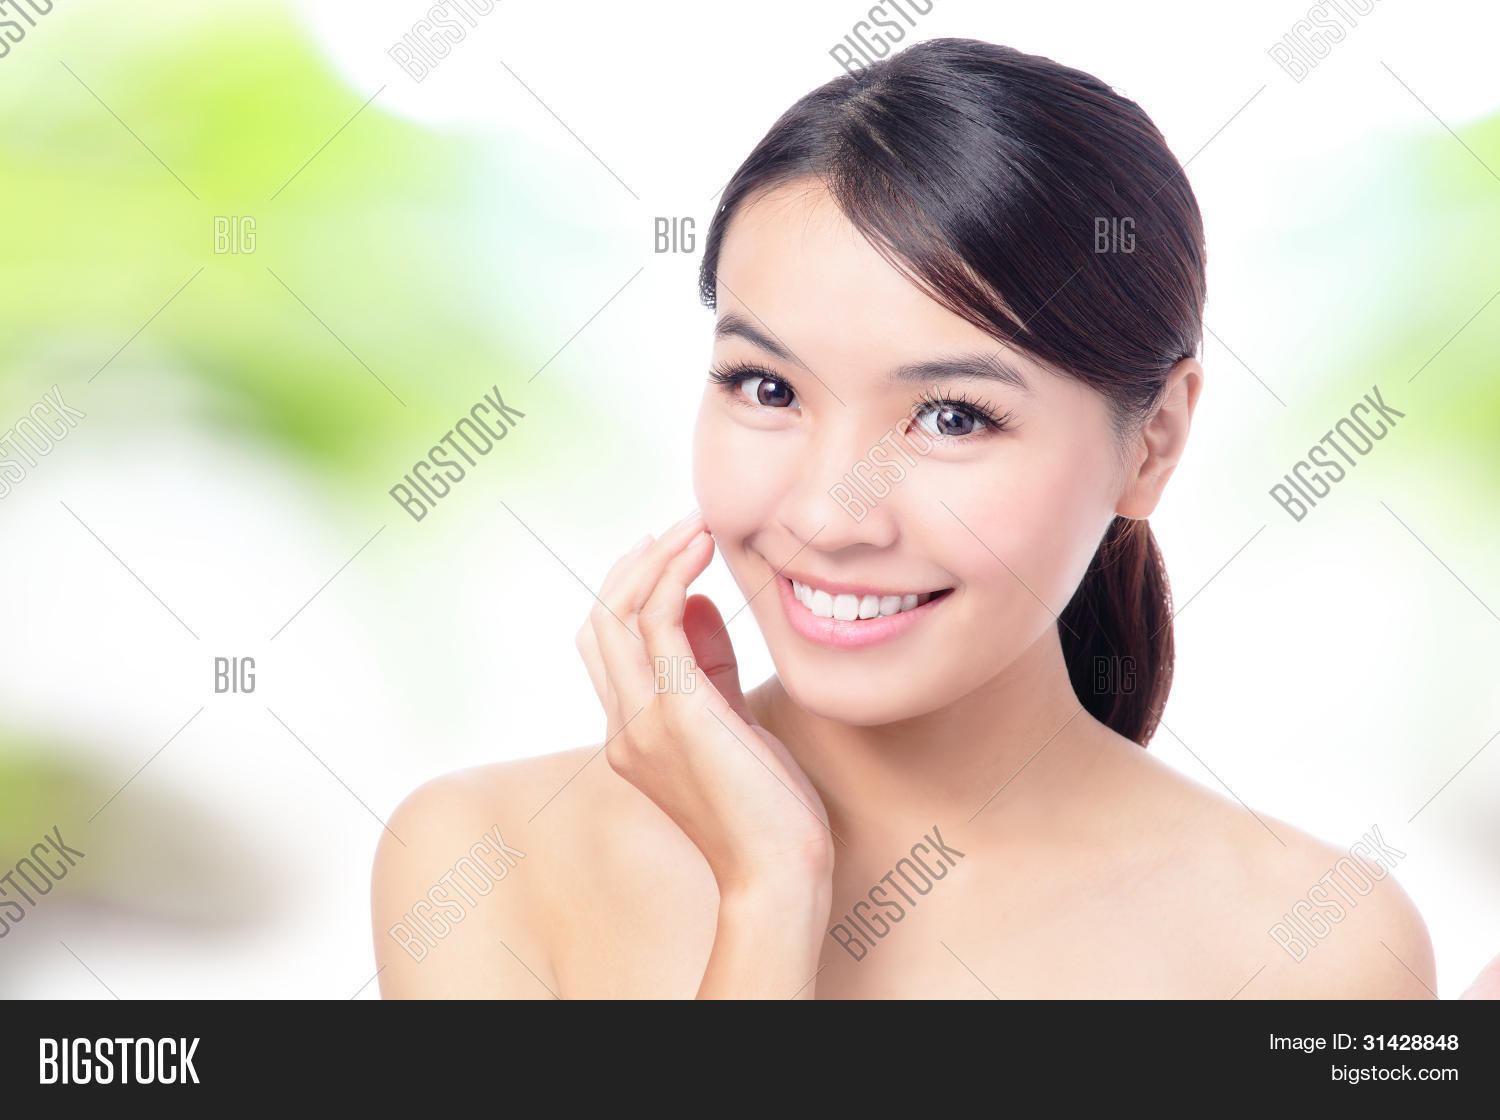 20s,adult,asian,asian girl,attractive,background,beautiful,beautiful woman face,beauty,body,care,chinese,clean,cosmetic,cute,eye care,eyes,face,face to face,face woman,fashion,female,fresh,girl,green,hair,hand,happy,health,isolated,japanese,lady,lifestyle,looking,makeup,model,natural,perfect,person,portrait,pretty,pure,purity,sensuality,sexy,skin,skin care,skincare,skin care beauty,smile,smiling face,smiling woman,spa,touch,treatment,wellness,woman,woman face,women face,young